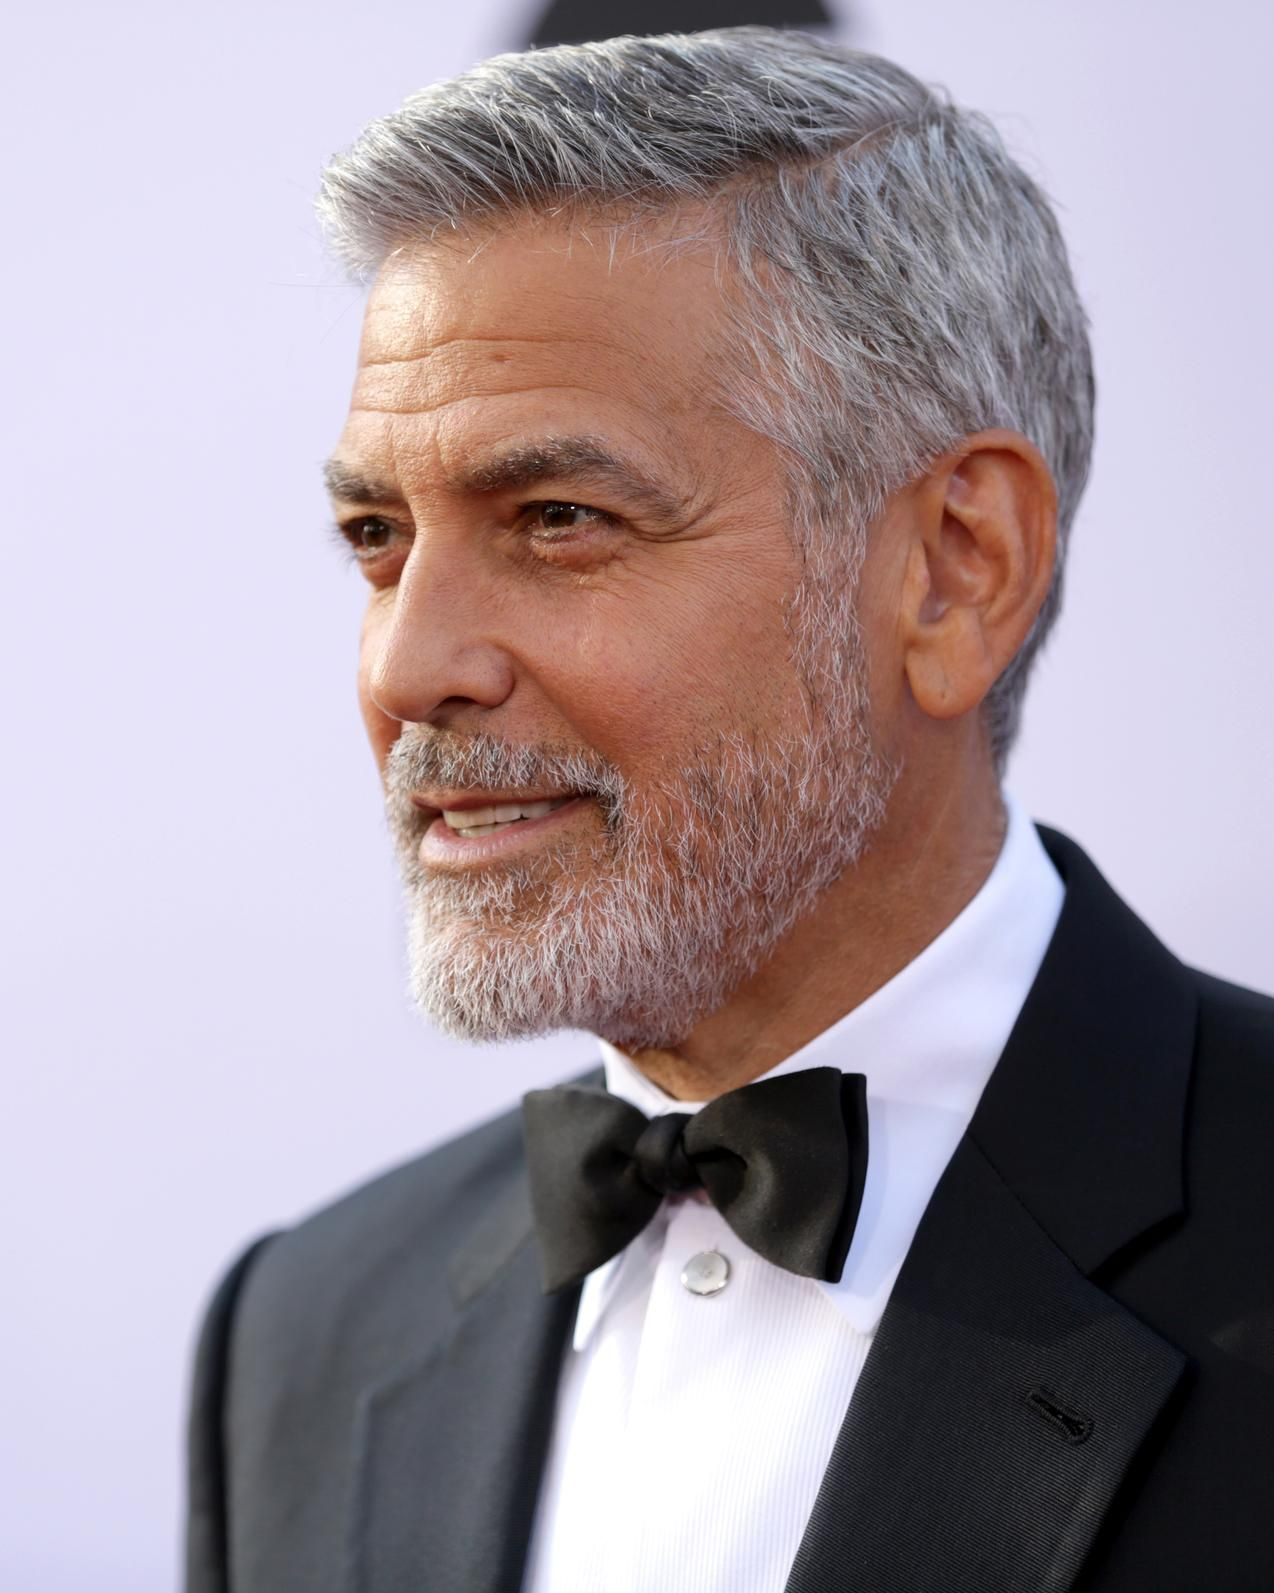 Mr Slate George Clooney S Salt And Pepper Coif Is A Look Men S Products Aim To Simulate In 2020 Salt And Pepper Hair Mens Hairstyles Grey Hair Men